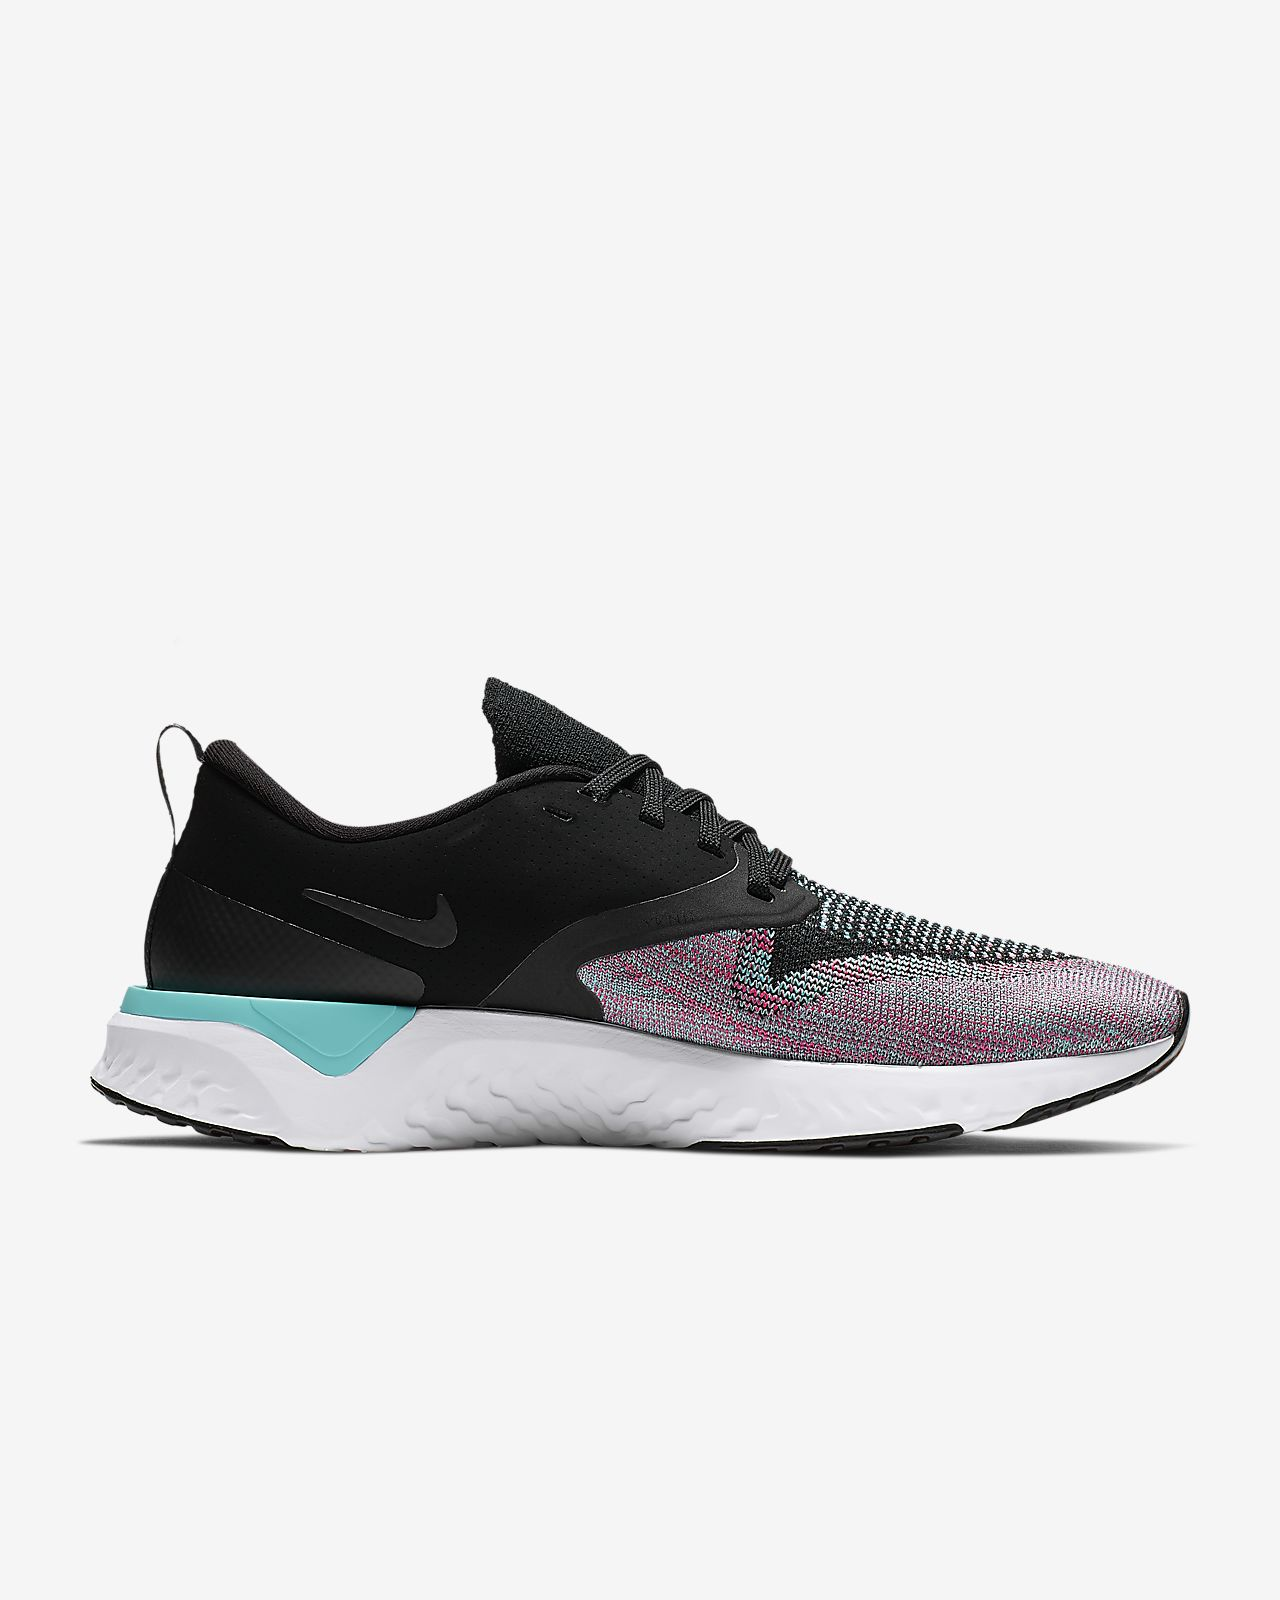 18e65521ae6 Low Resolution Nike Odyssey React Flyknit 2 Women s Running Shoe Nike  Odyssey React Flyknit 2 Women s Running Shoe